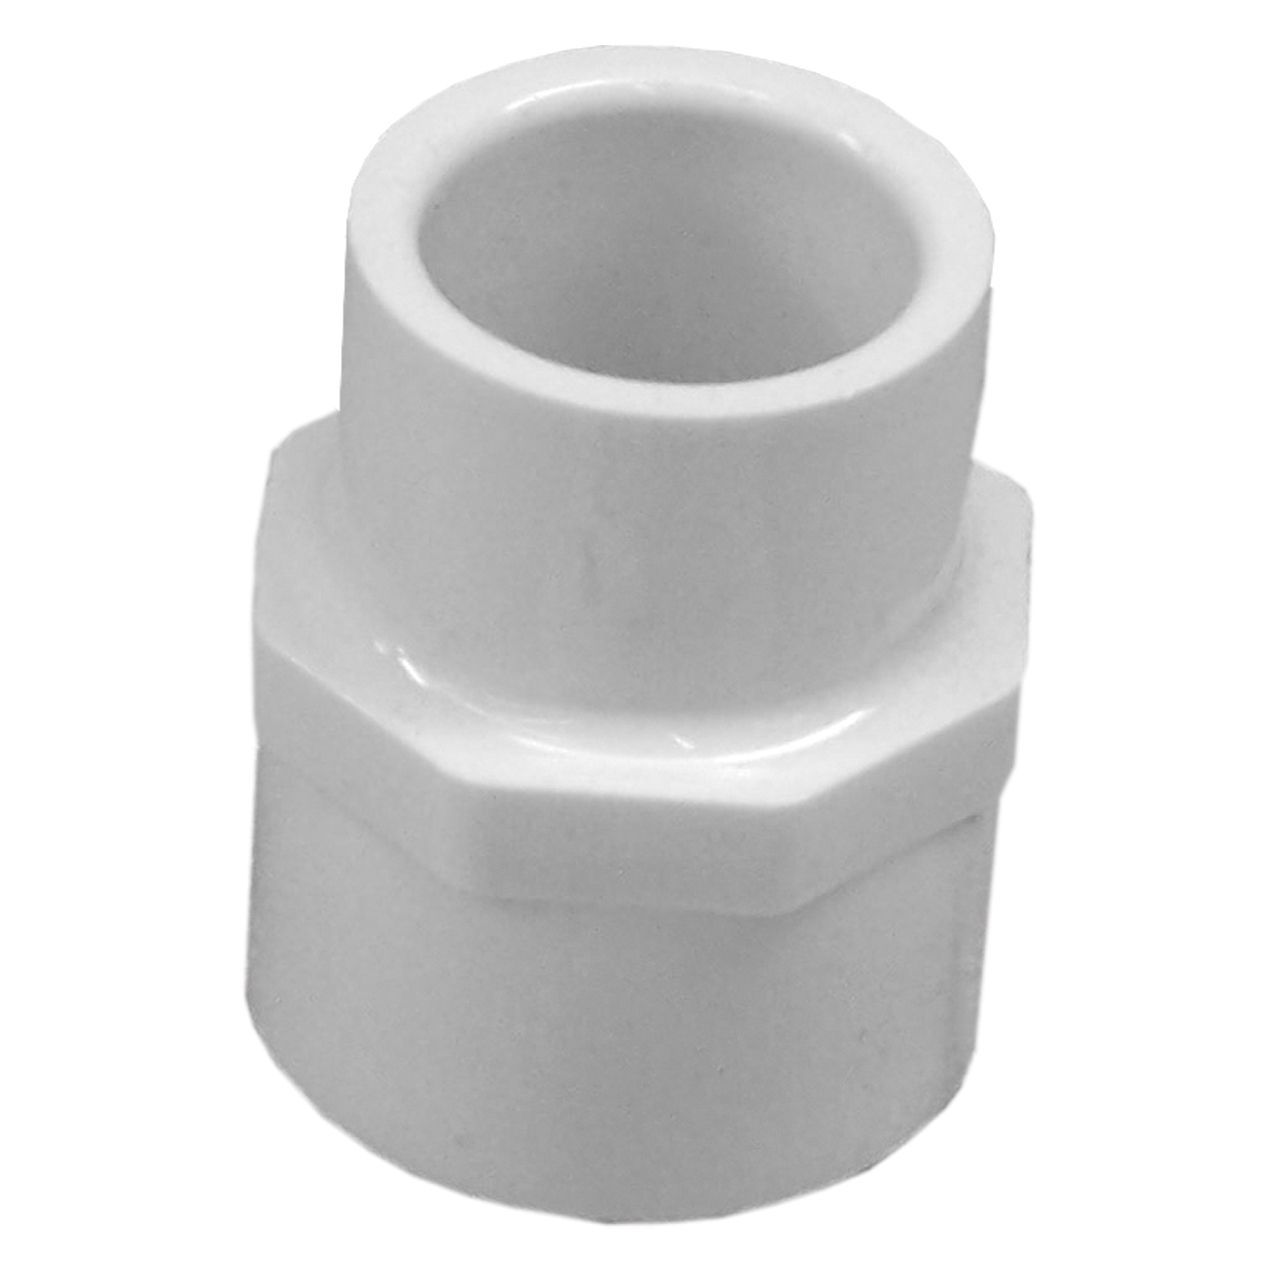 Genova Products 30357 1 2 X 3 4 Pvc Reducing Female Adapter Pvc Fem Adapt1 2x3 4 Blue Pool